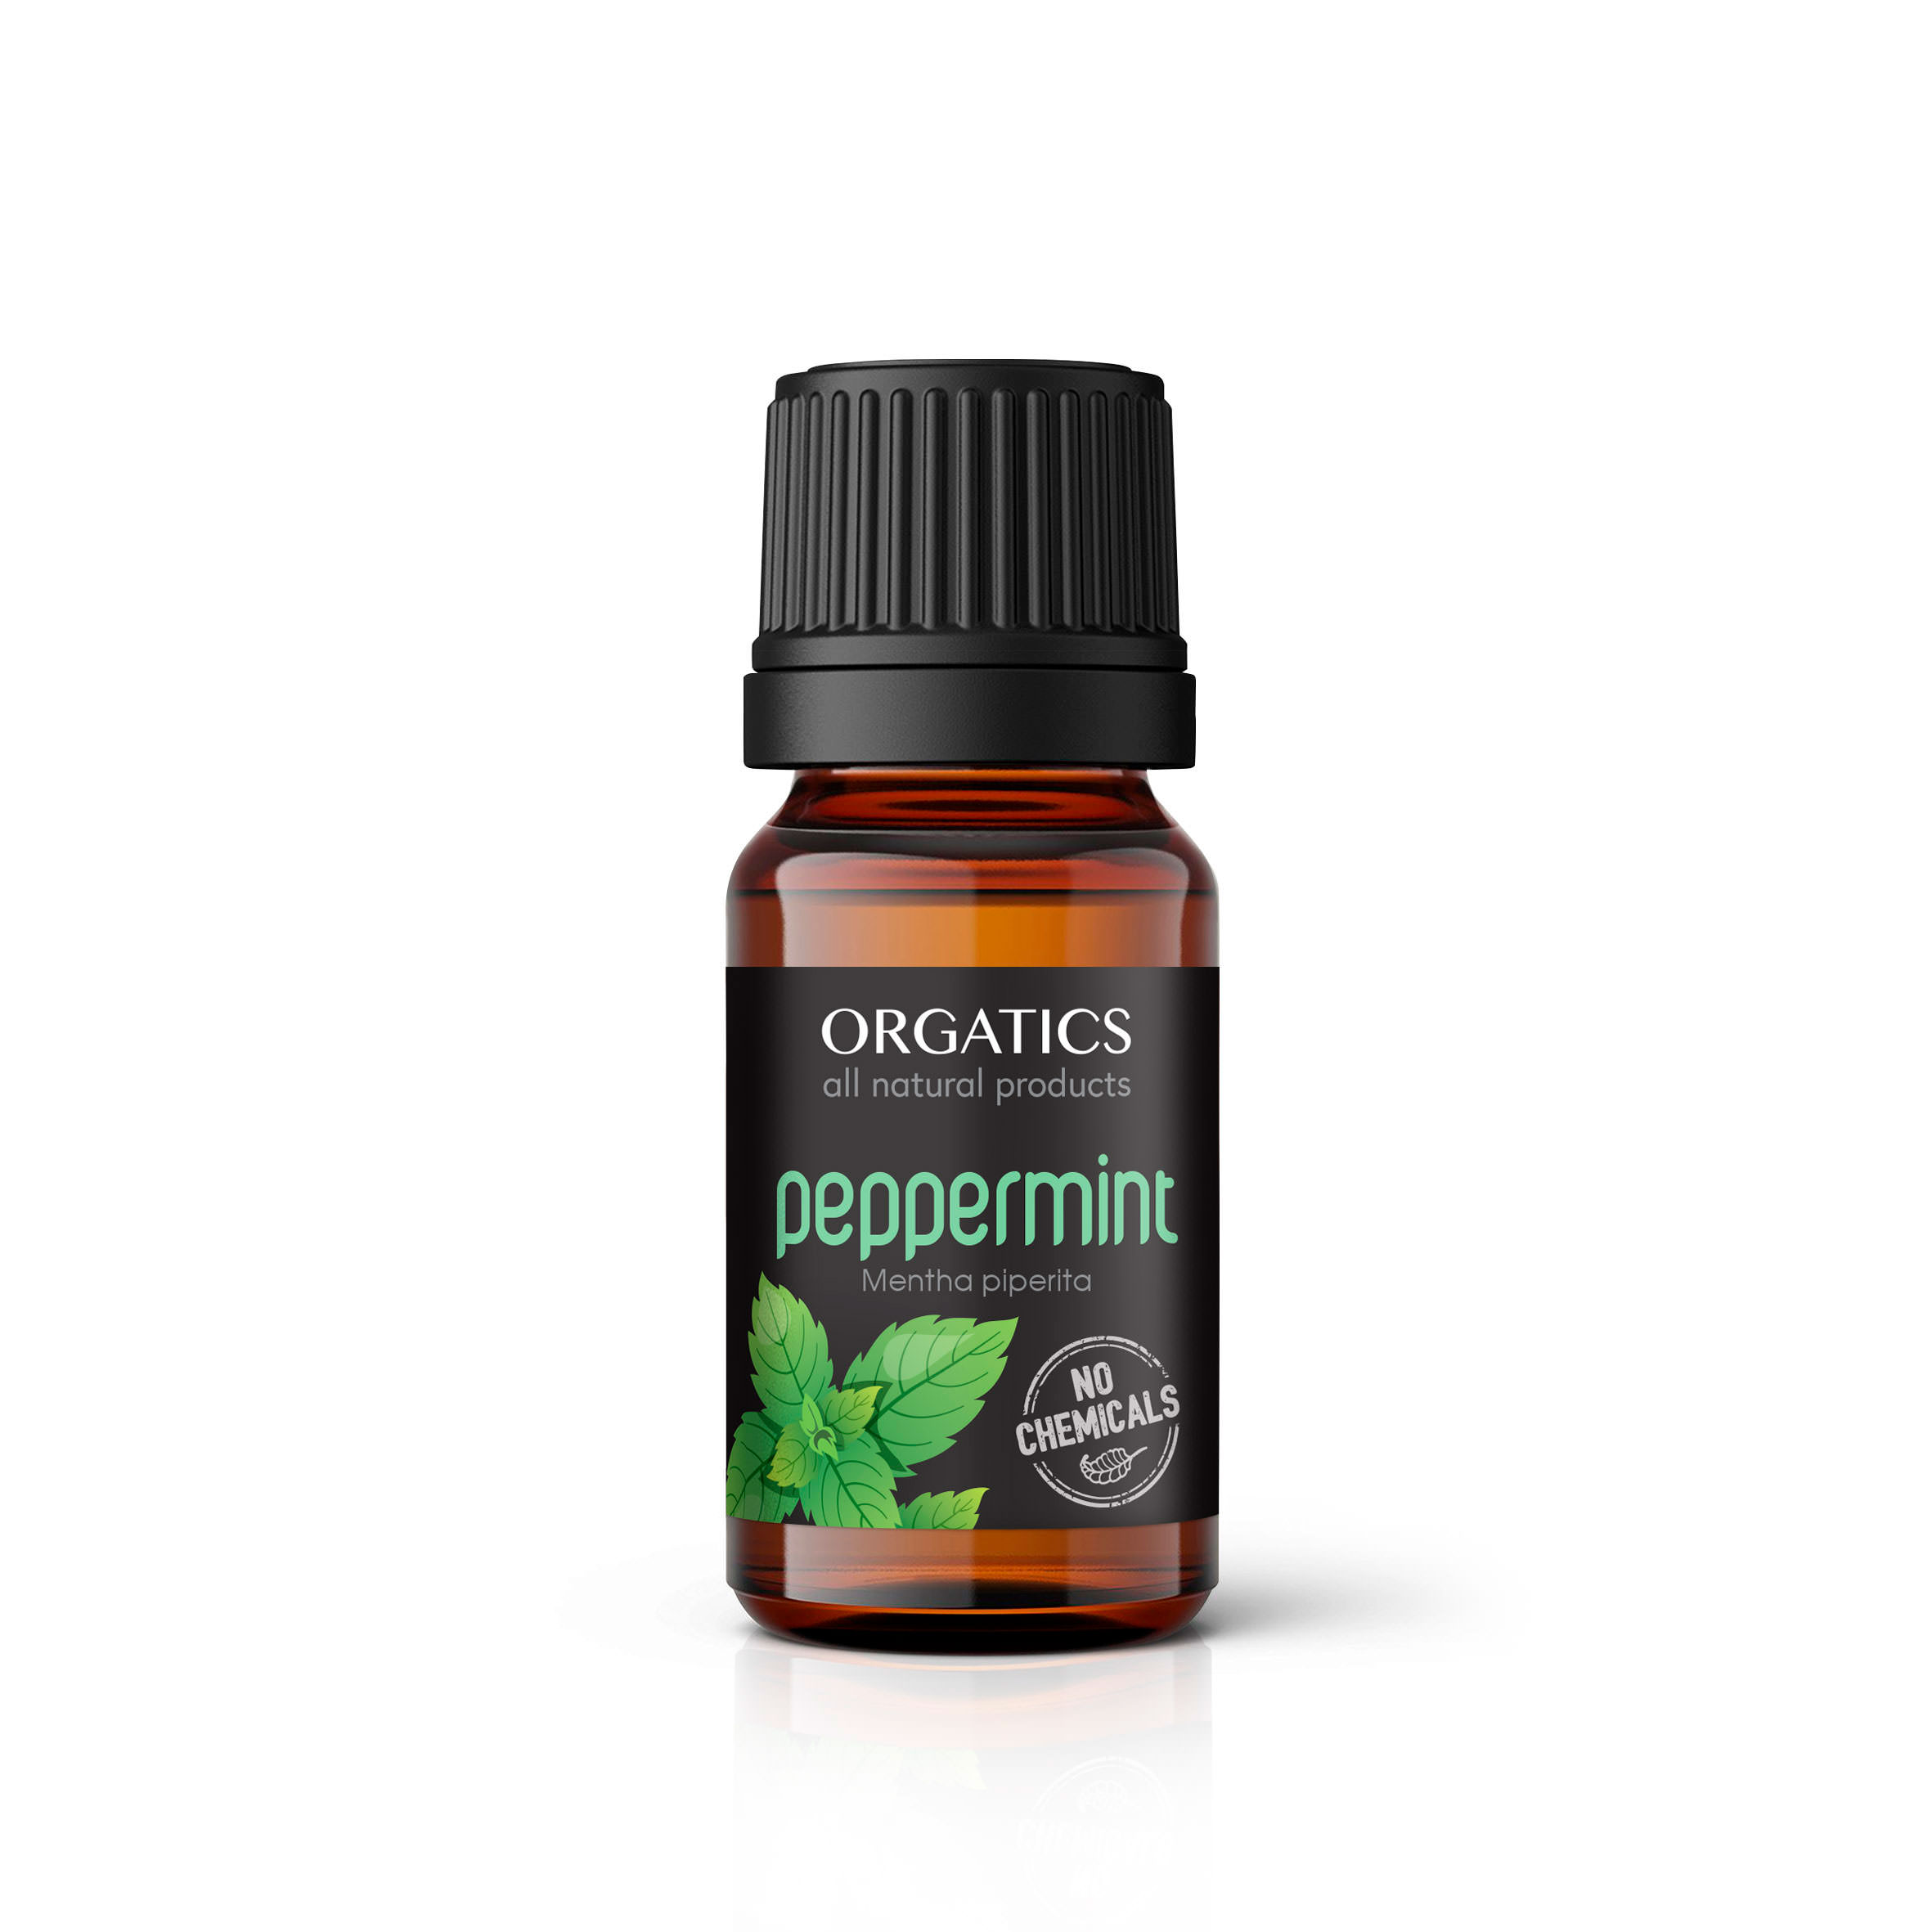 ORGATICS Peppermint Oil Bottle